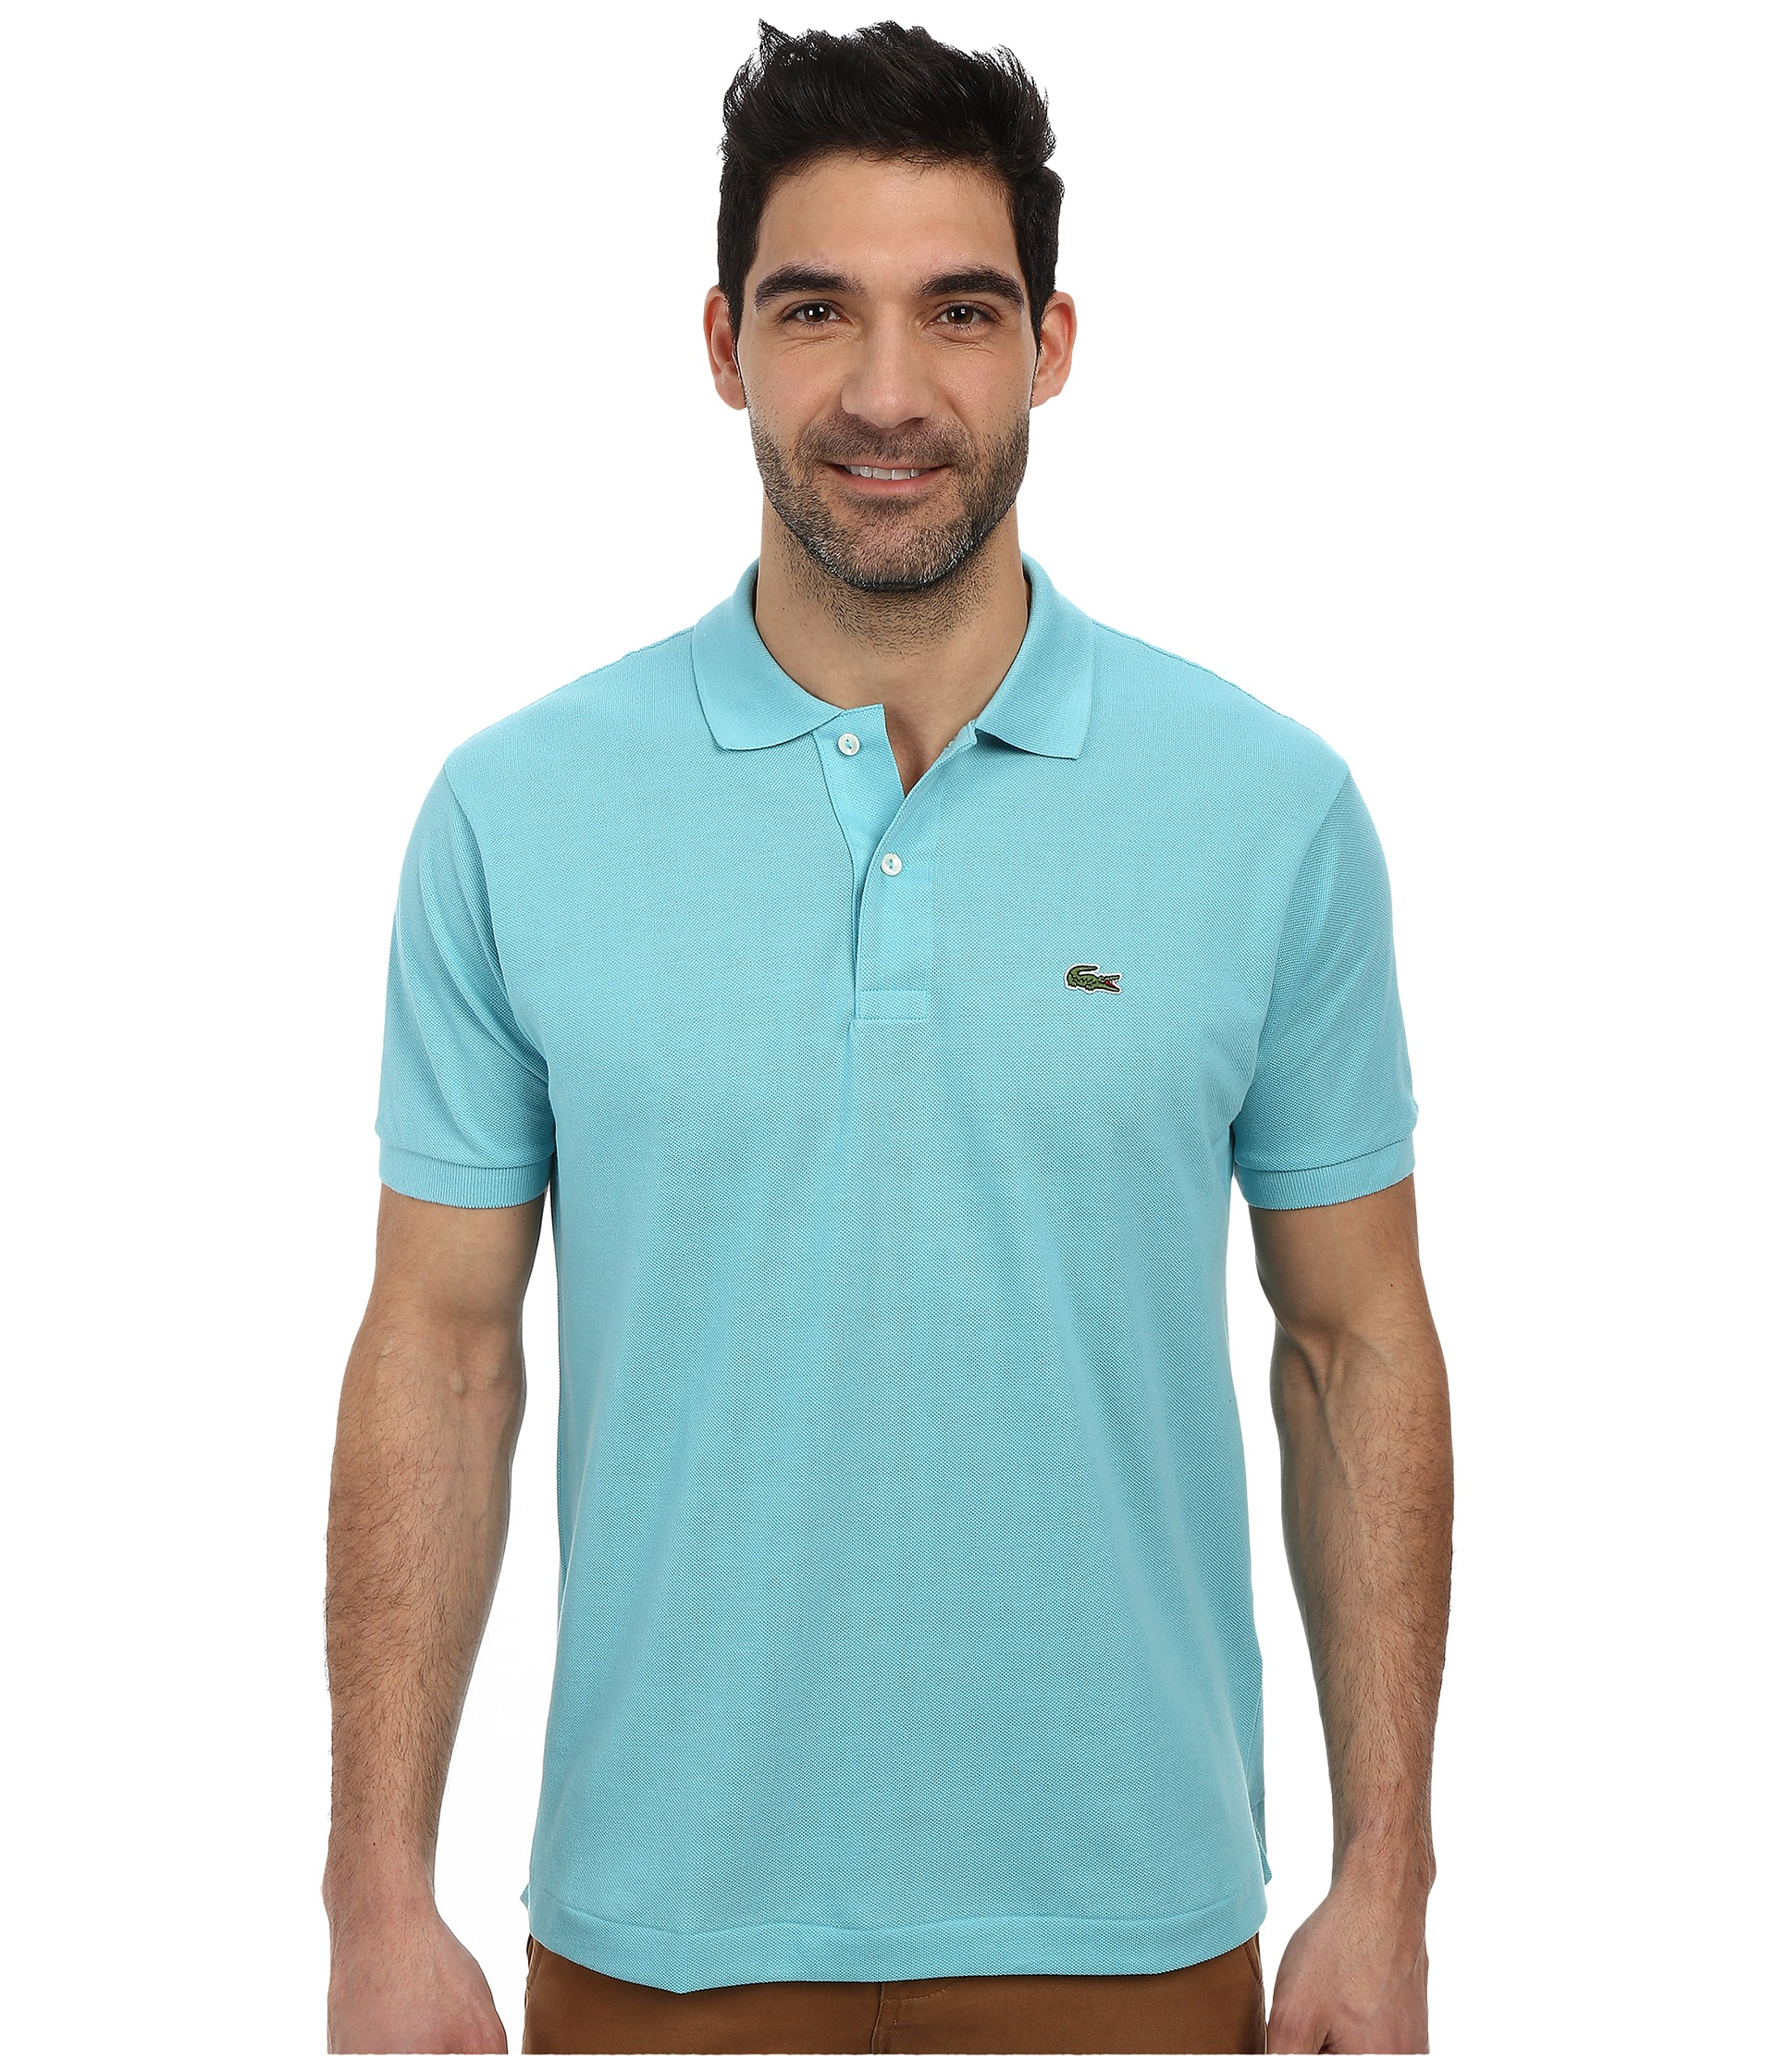 cec348681836 Lyst - Lacoste L1212 Classic Pique Polo Shirt in Blue for Men